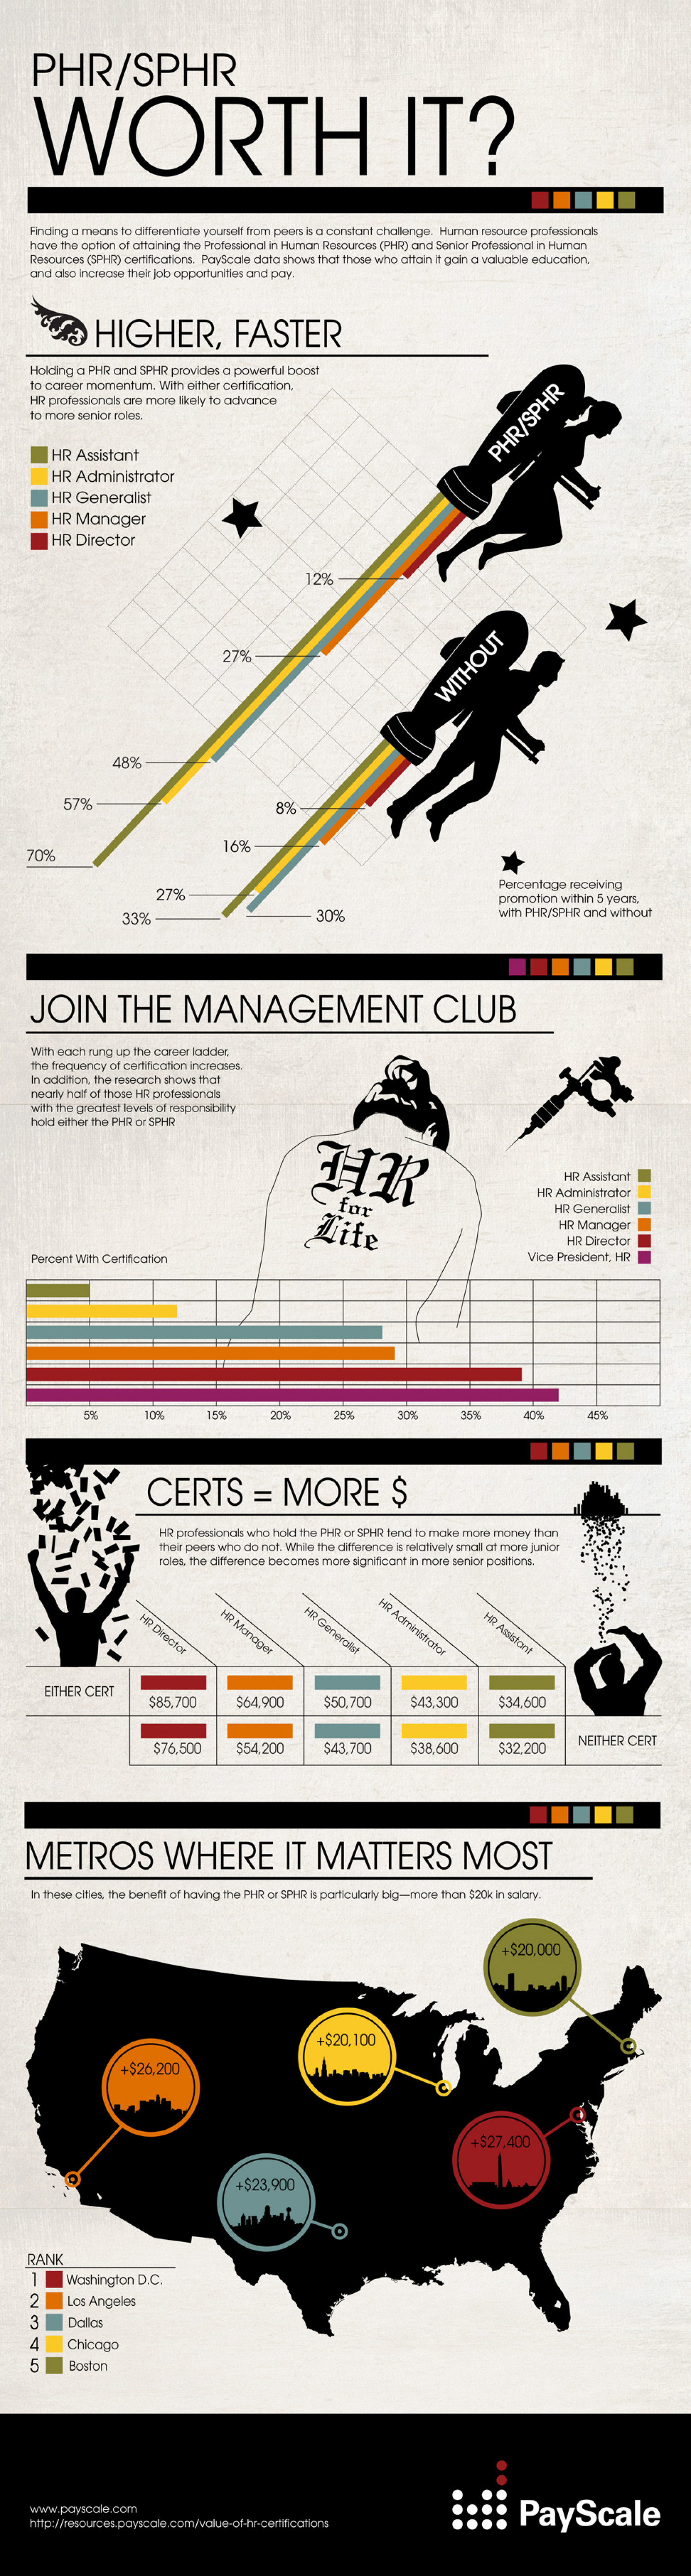 Worth It? The Value of the PHR and SPHR Infographic